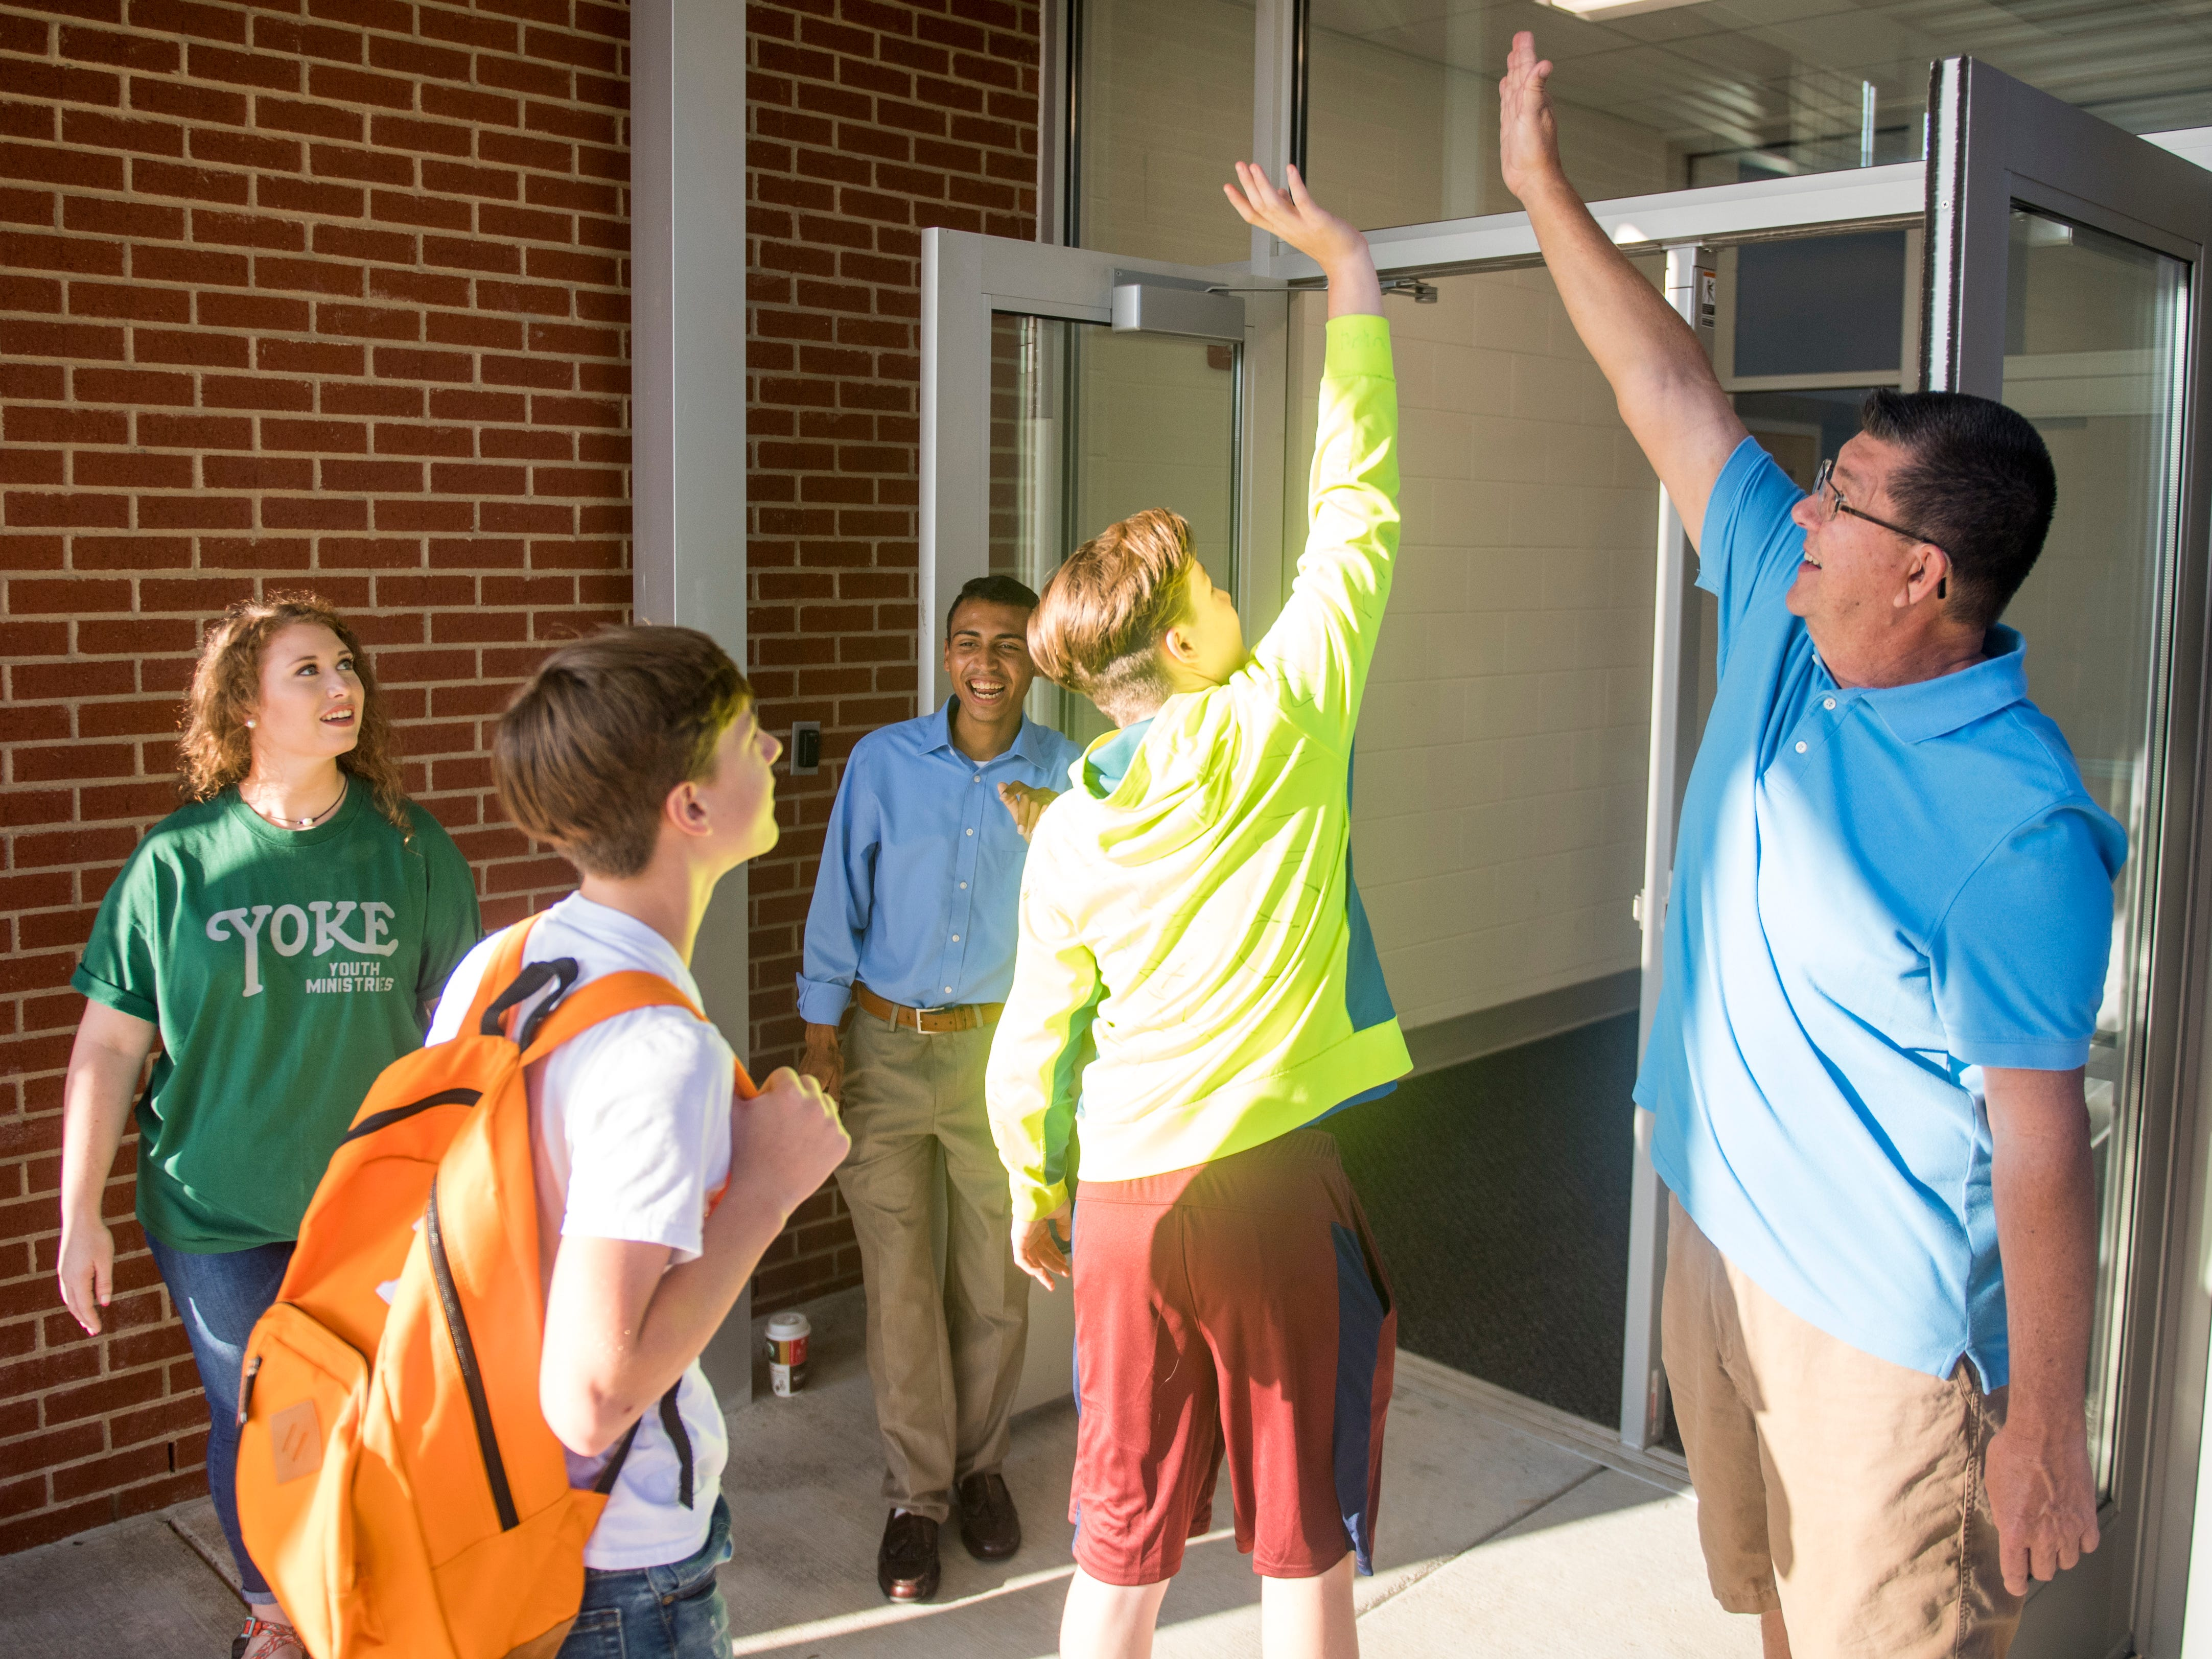 A student leaps to high five Fairview Baptist pastor Keith Weaver, right, as they enter the new Gibbs Middle School for the first day of school on Wednesday, August 8, 2018.